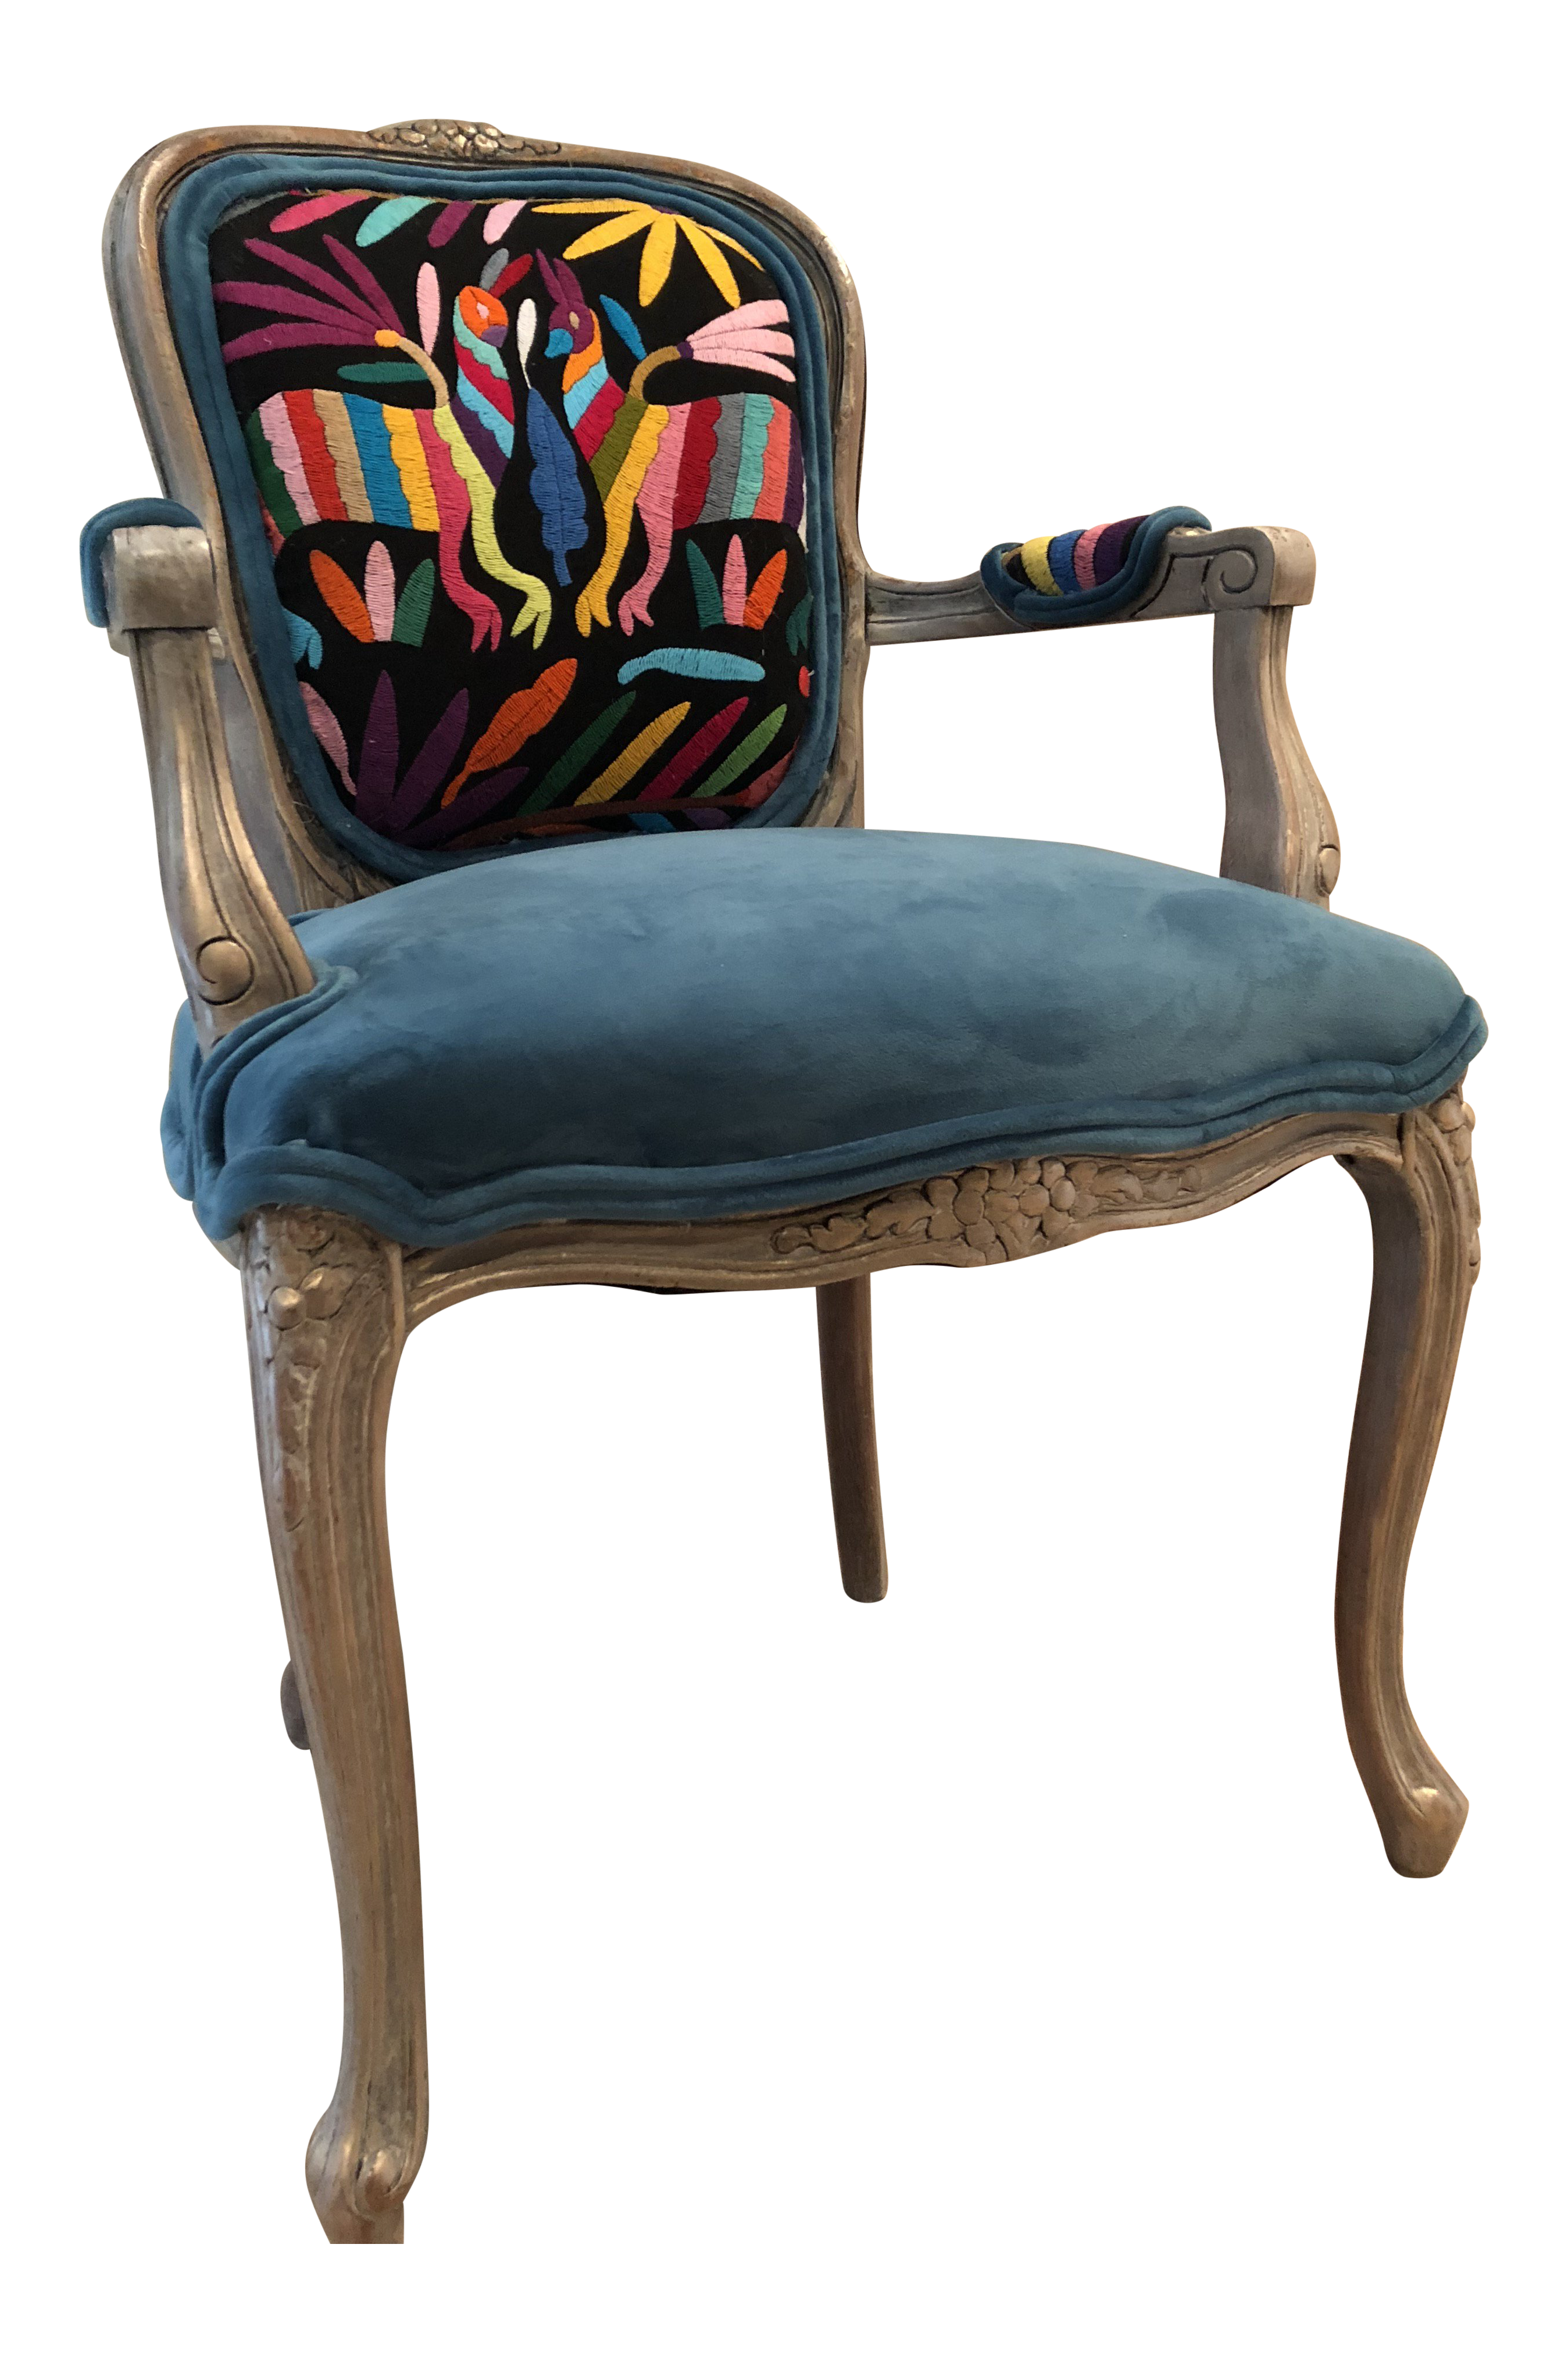 1990s Southwestern Otomi Teal Windsor Chair